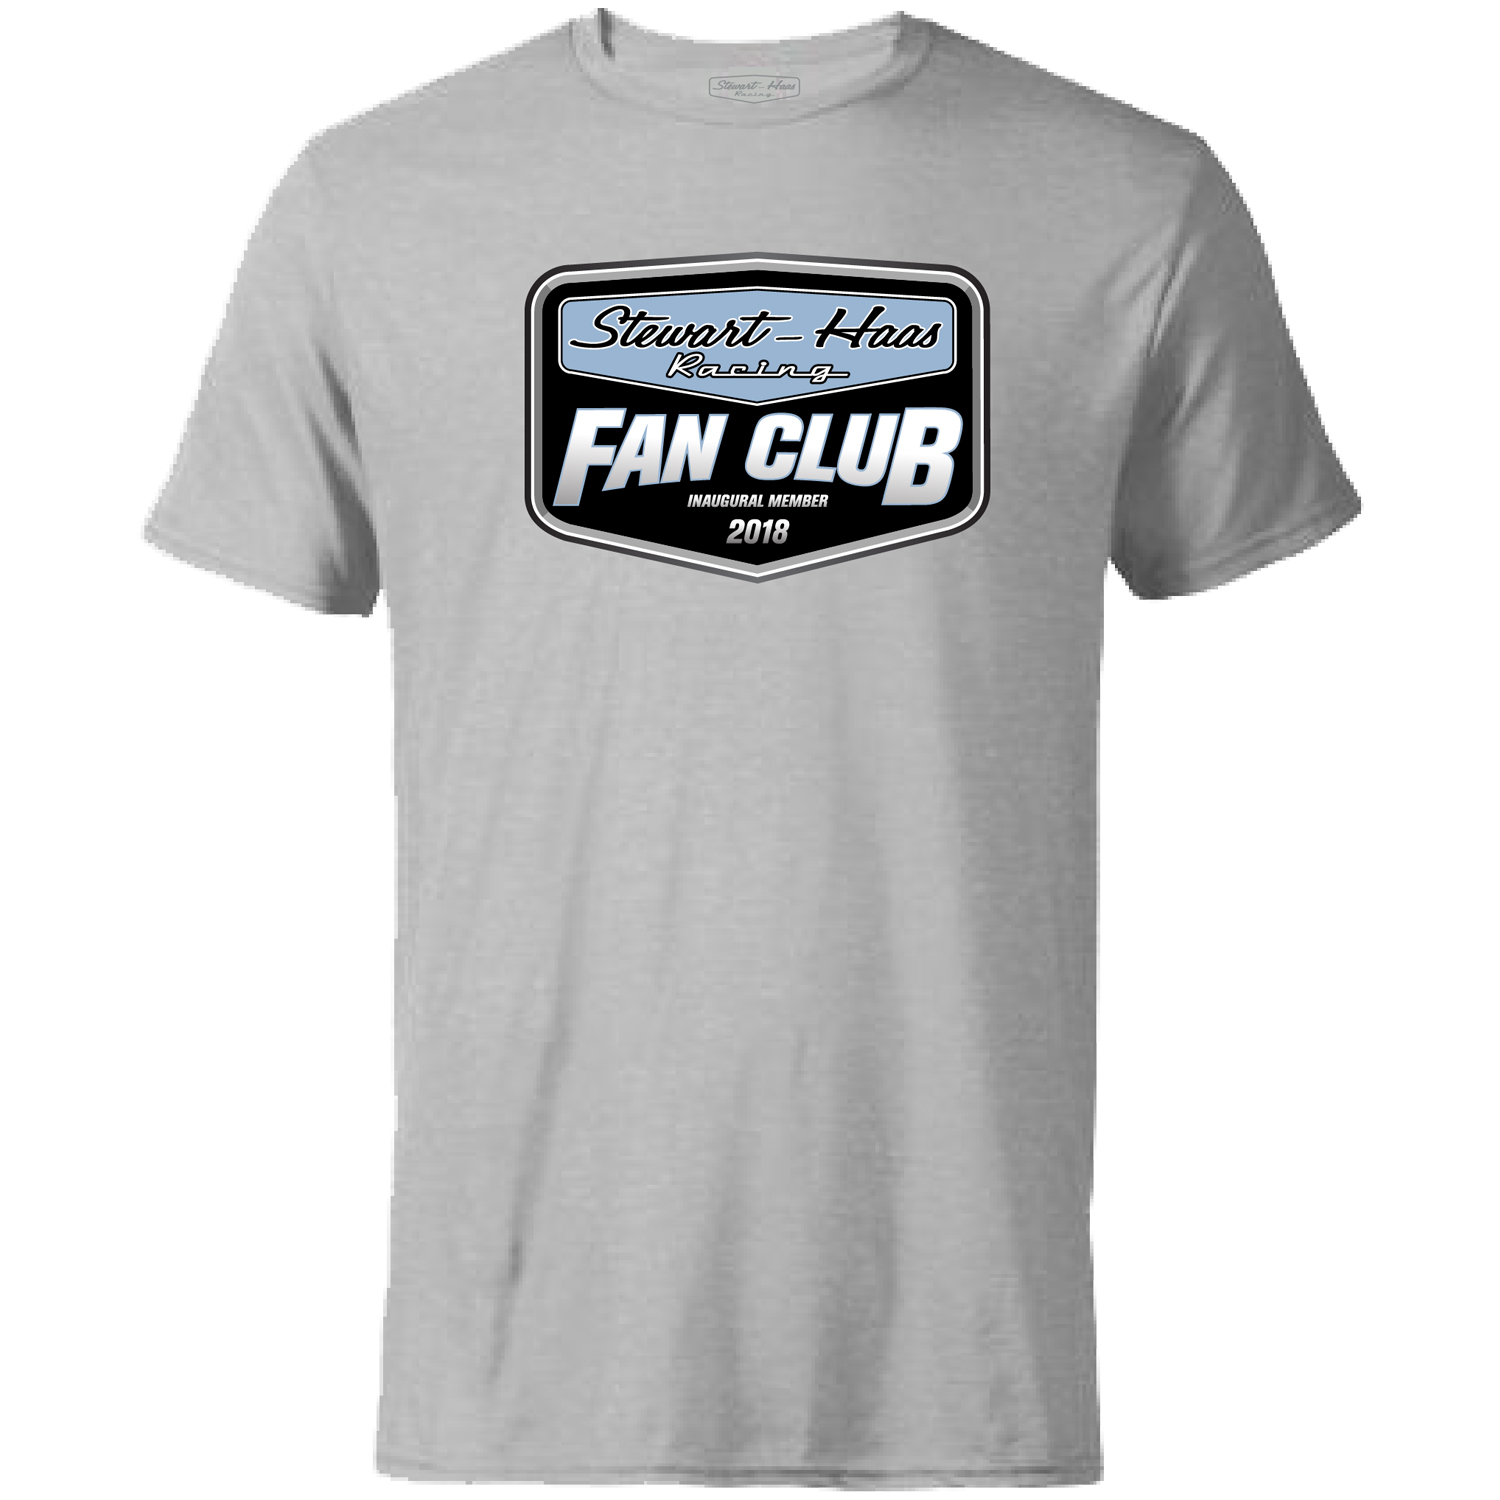 Exclusive Stewart-Haas Racing Fan Club Tee